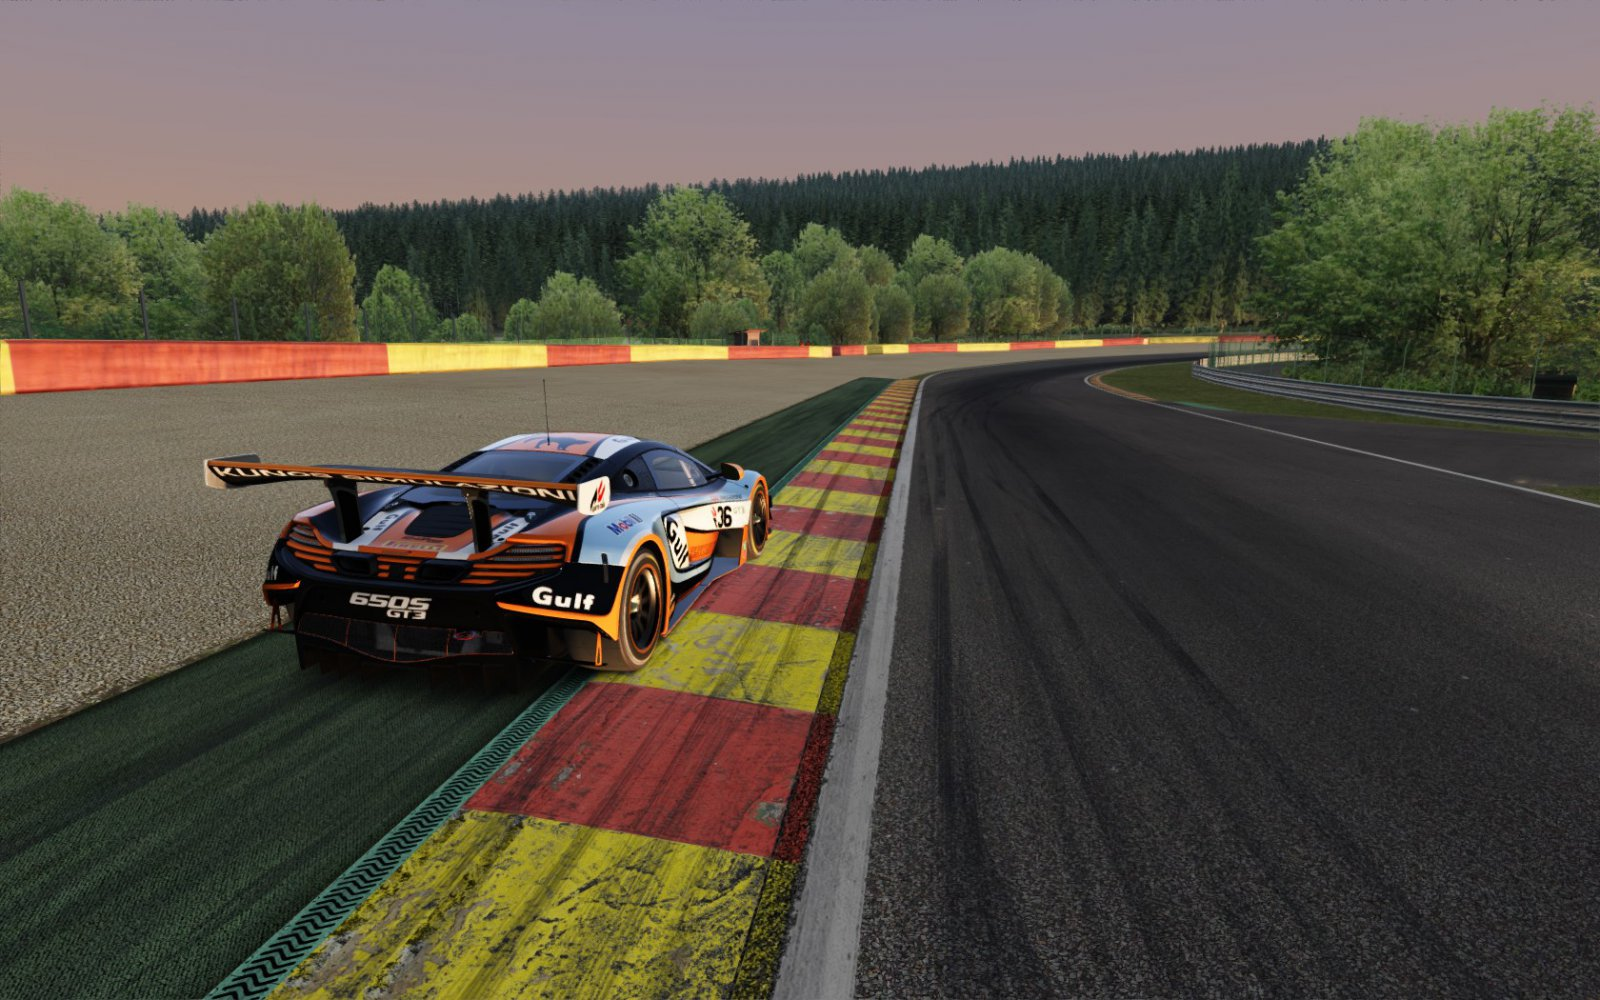 Screenshot_ks_mclaren_650_gt3_spa_16-4-119-18-44-21.jpg